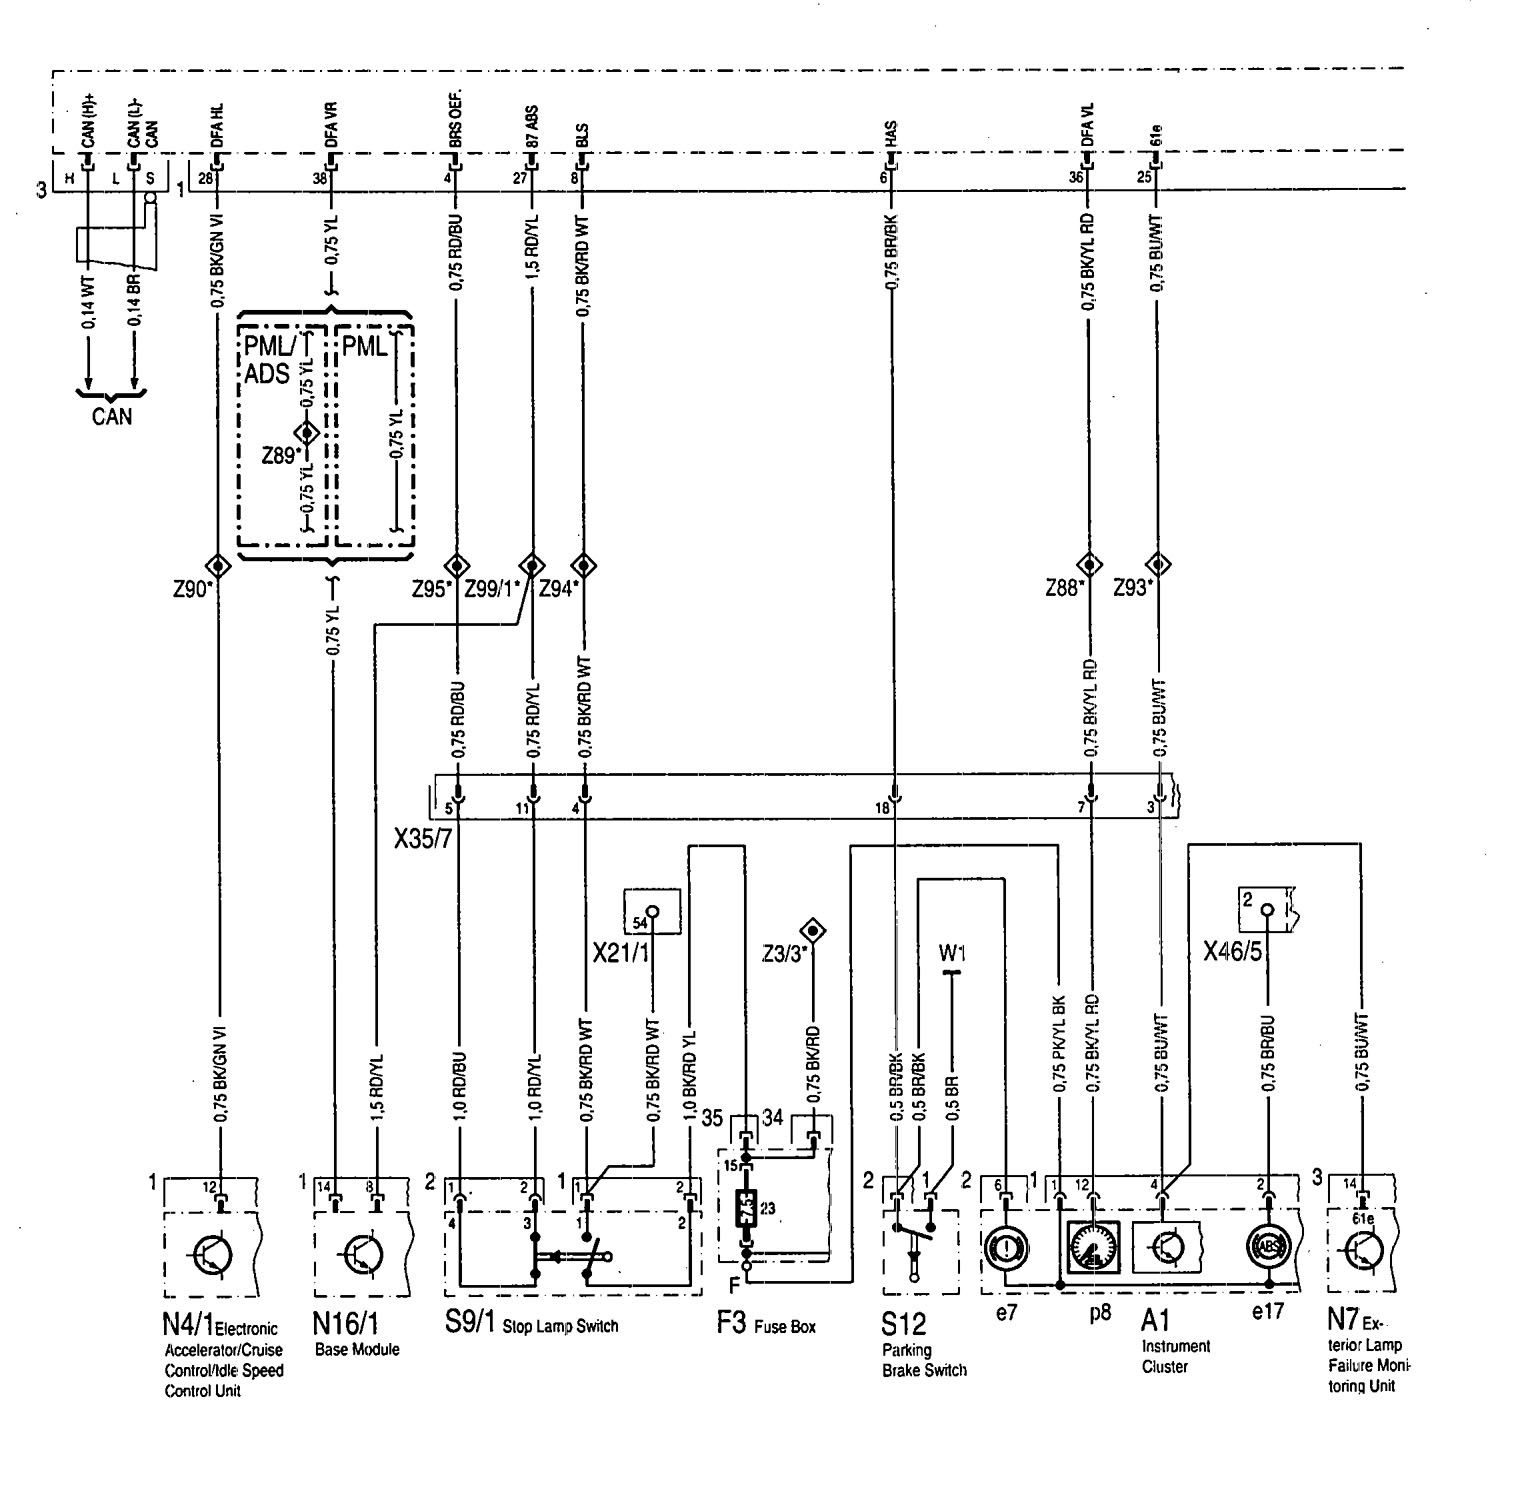 Mercedes Abs Wiring Diagram : Mercedes benz sel wiring diagrams abs